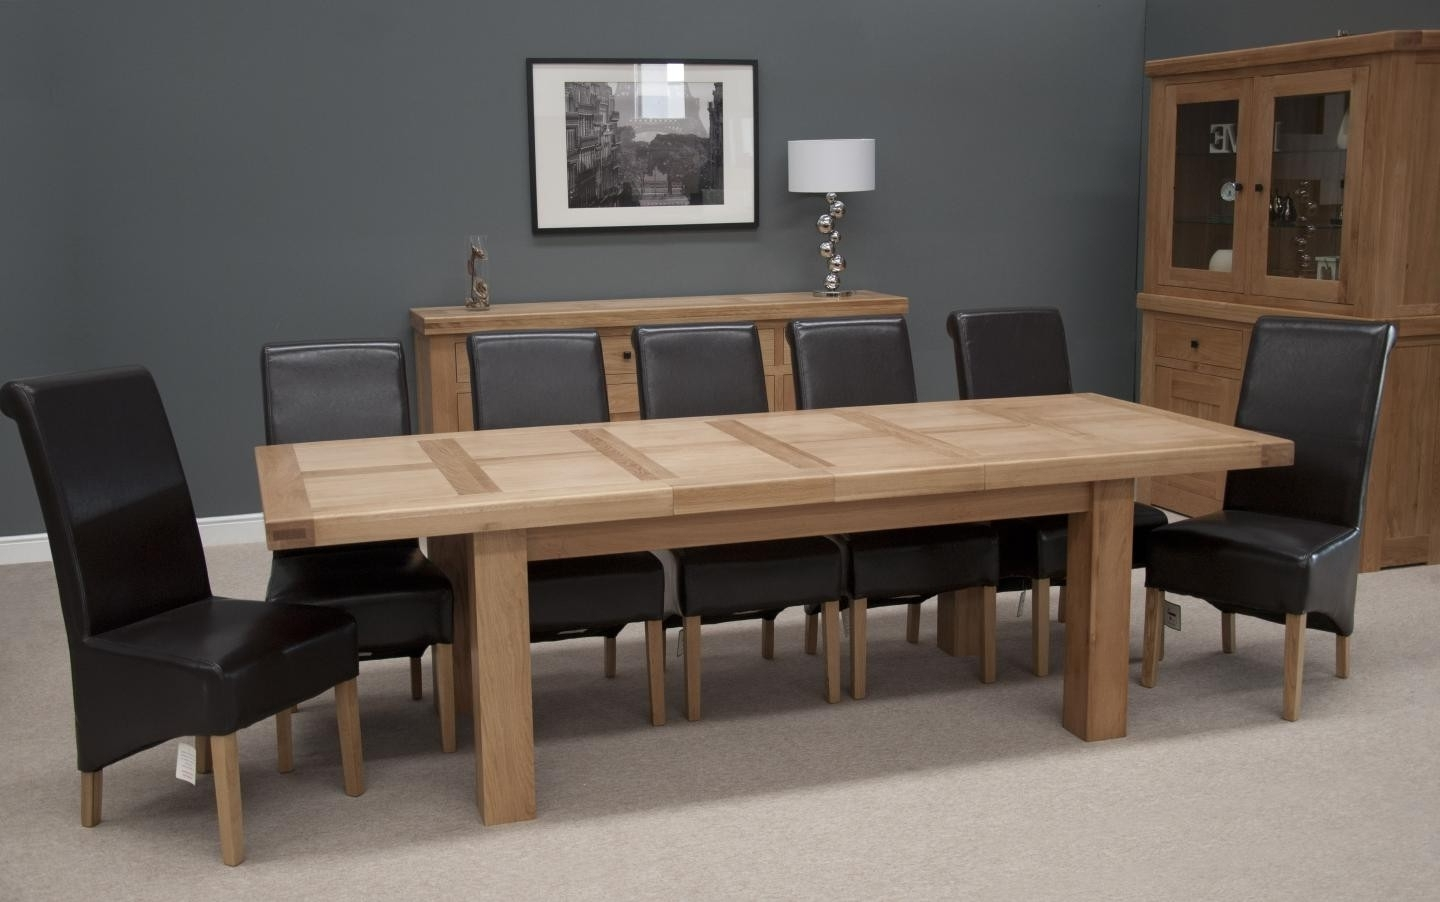 Recent Hippo Oak Large Dining Table (2 Leaf) 180Cm – 260Cm X 100Cm Within 180Cm Dining Tables (View 22 of 25)